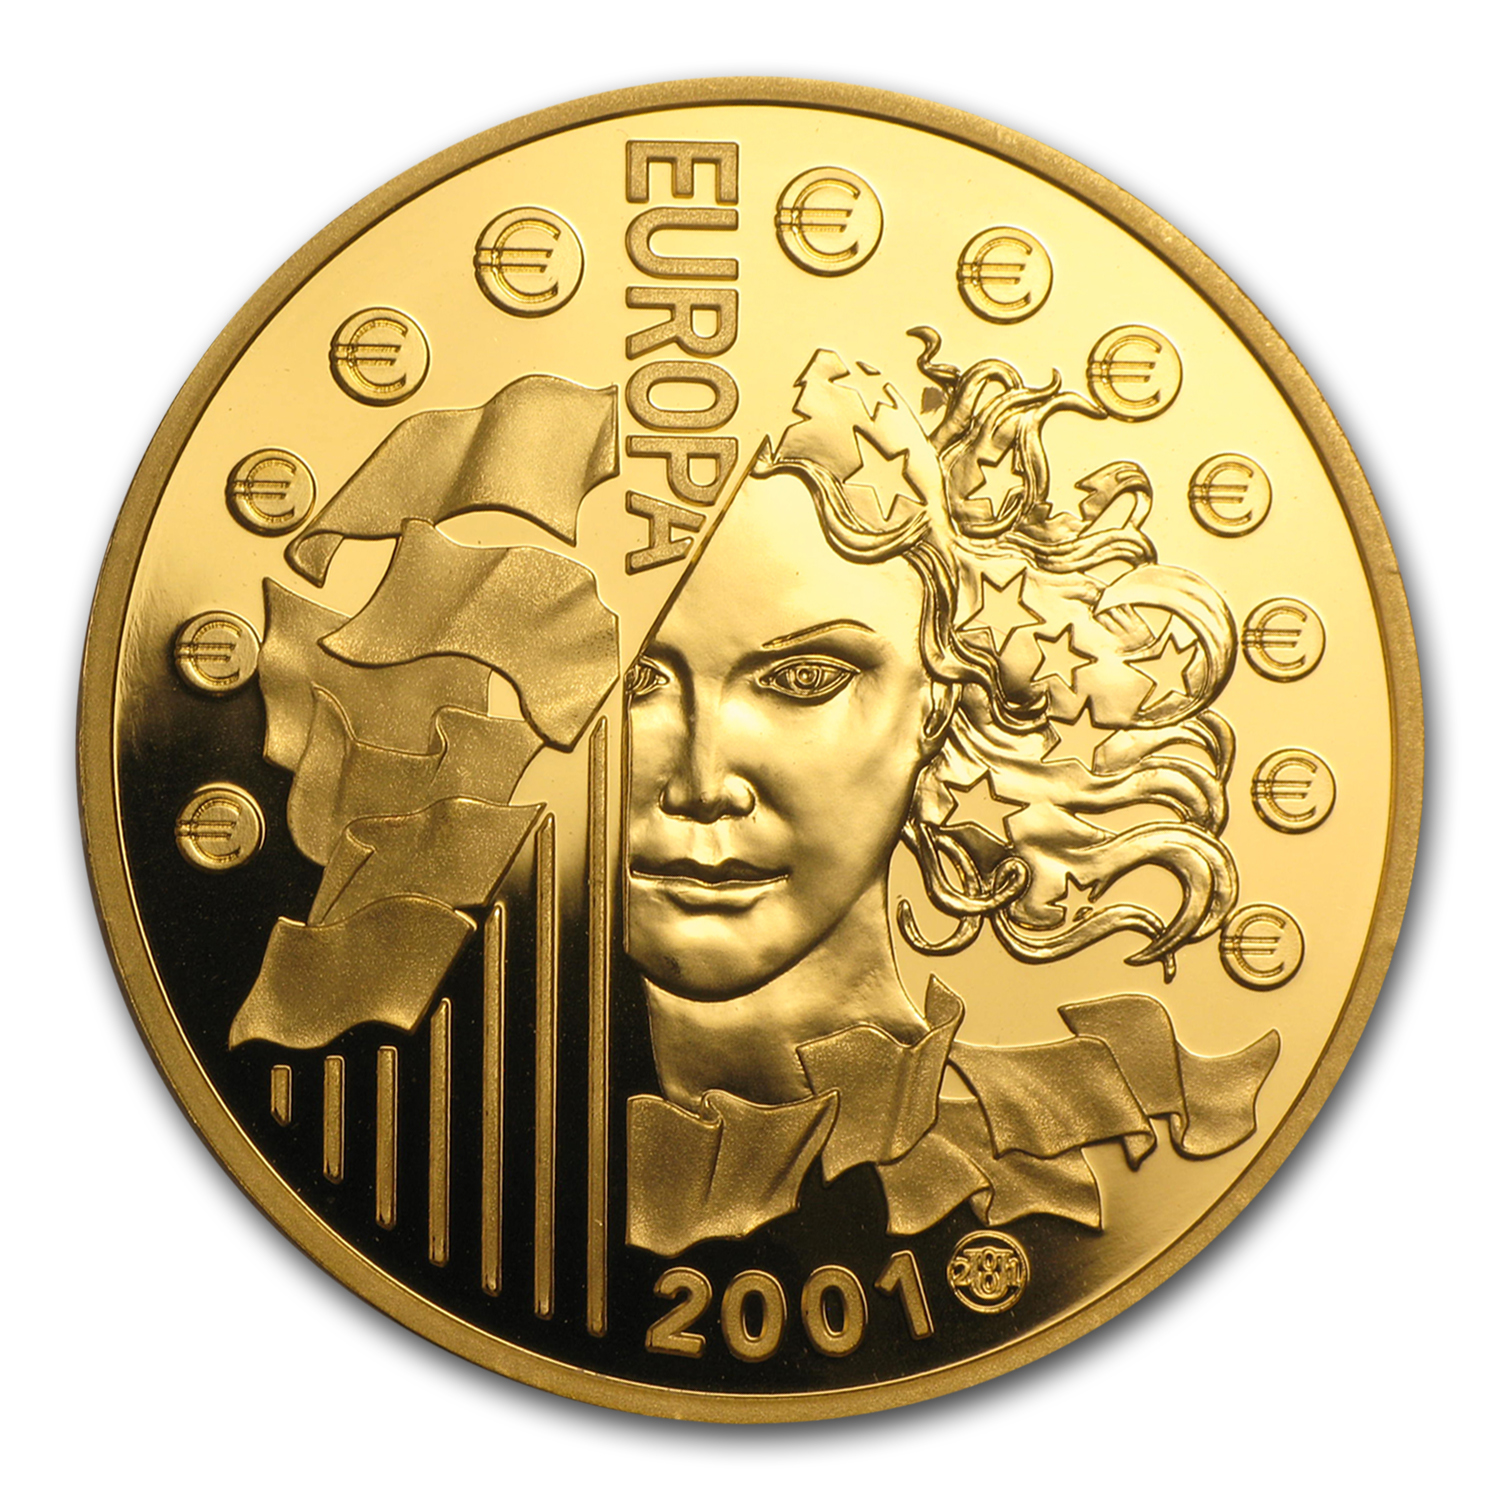 France 2001 655.957 Francs Gold .999 oz